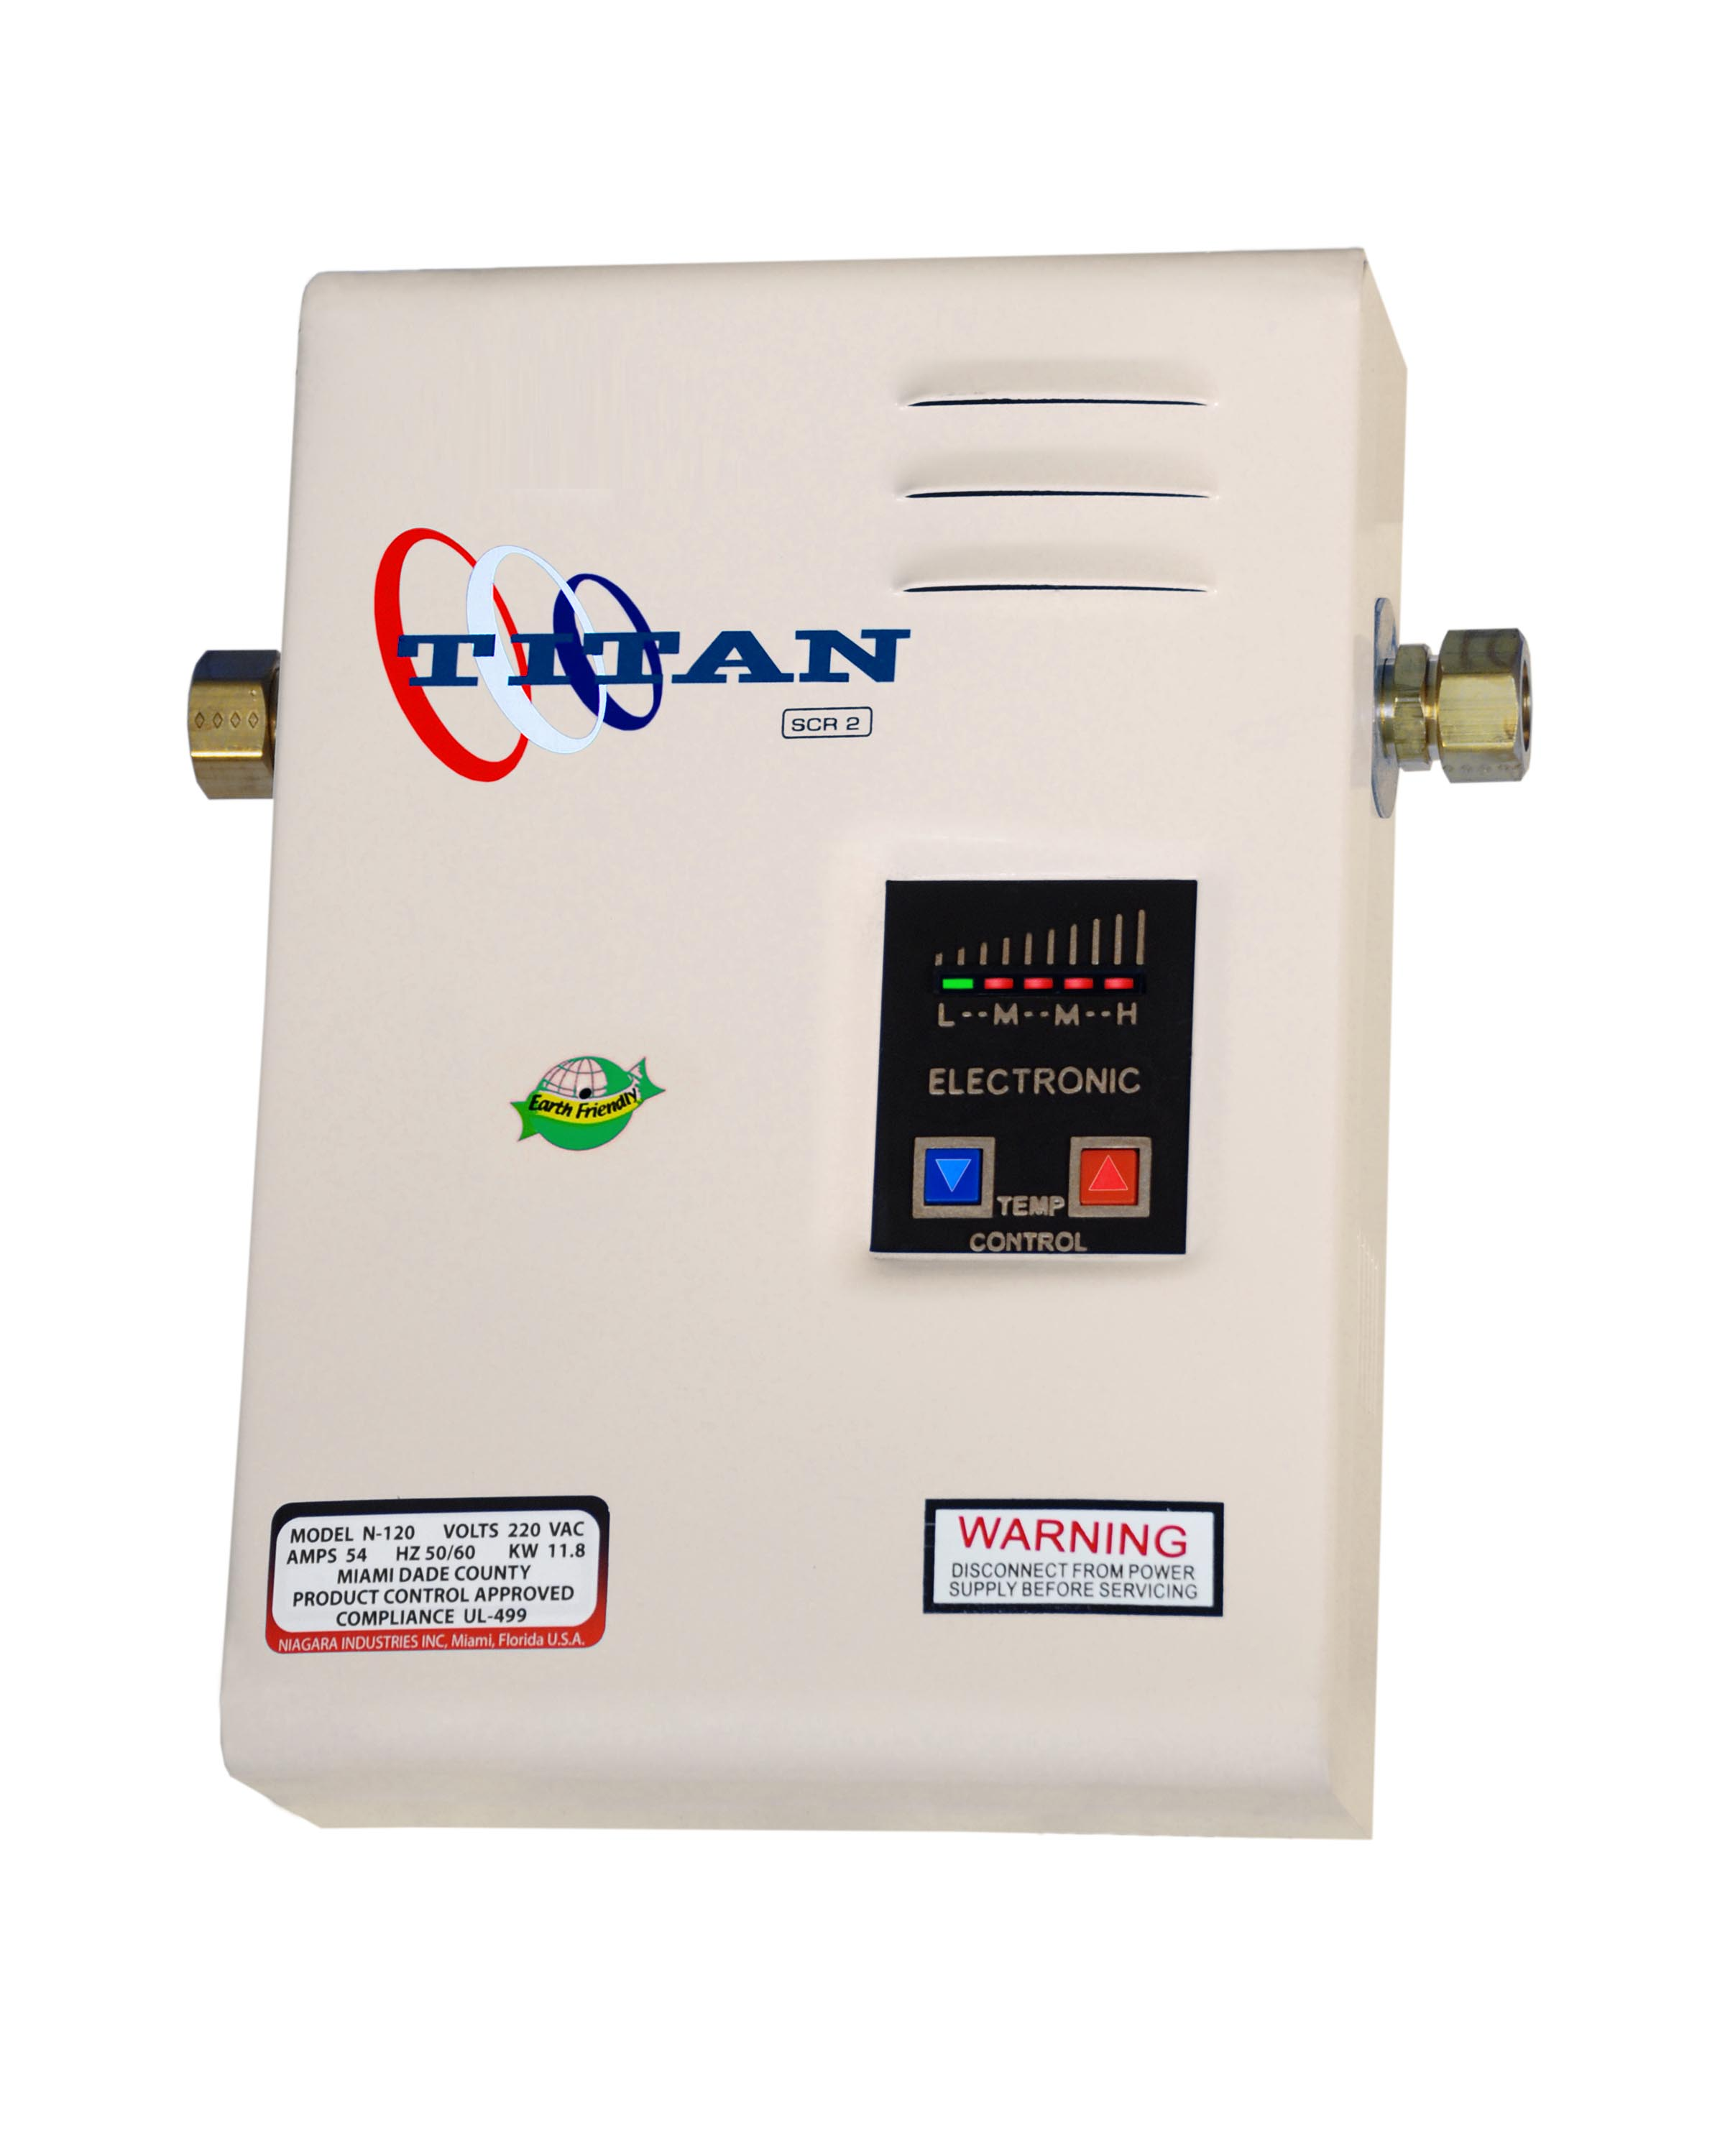 Titan Scr2 Electric Tankless Water Heater